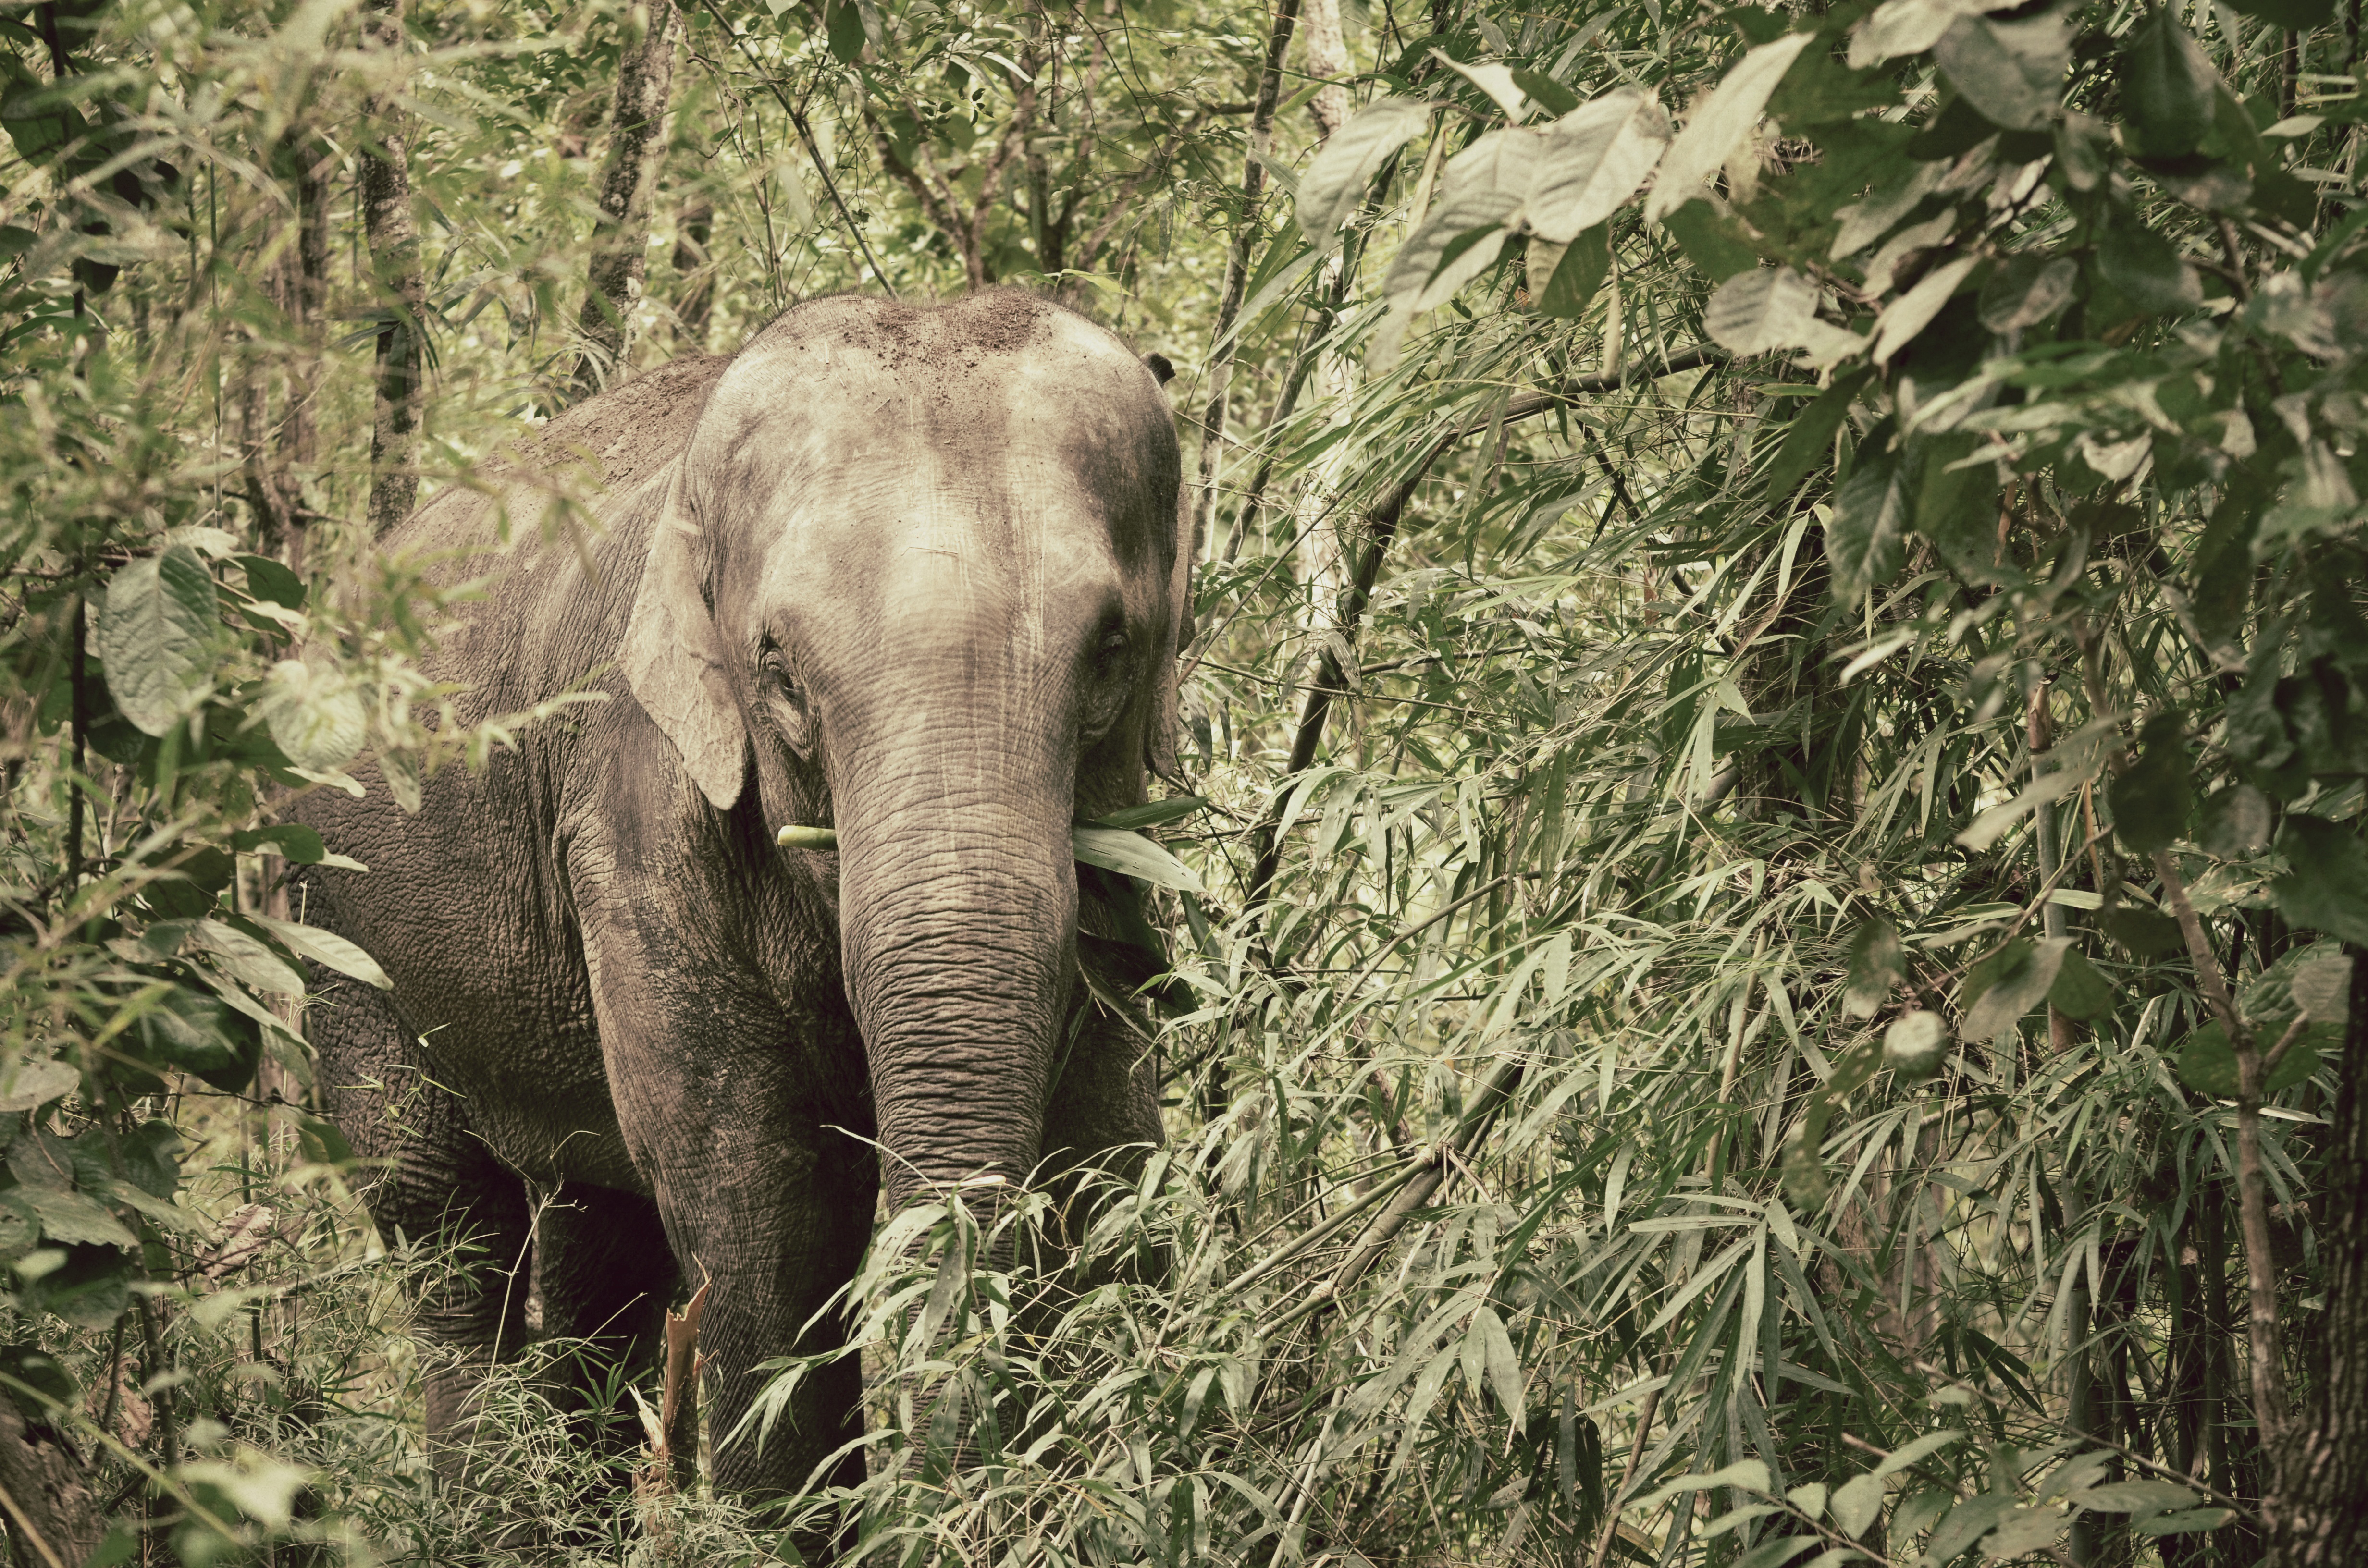 Visit the Elephant Nature Park when you are in Chiang Mai